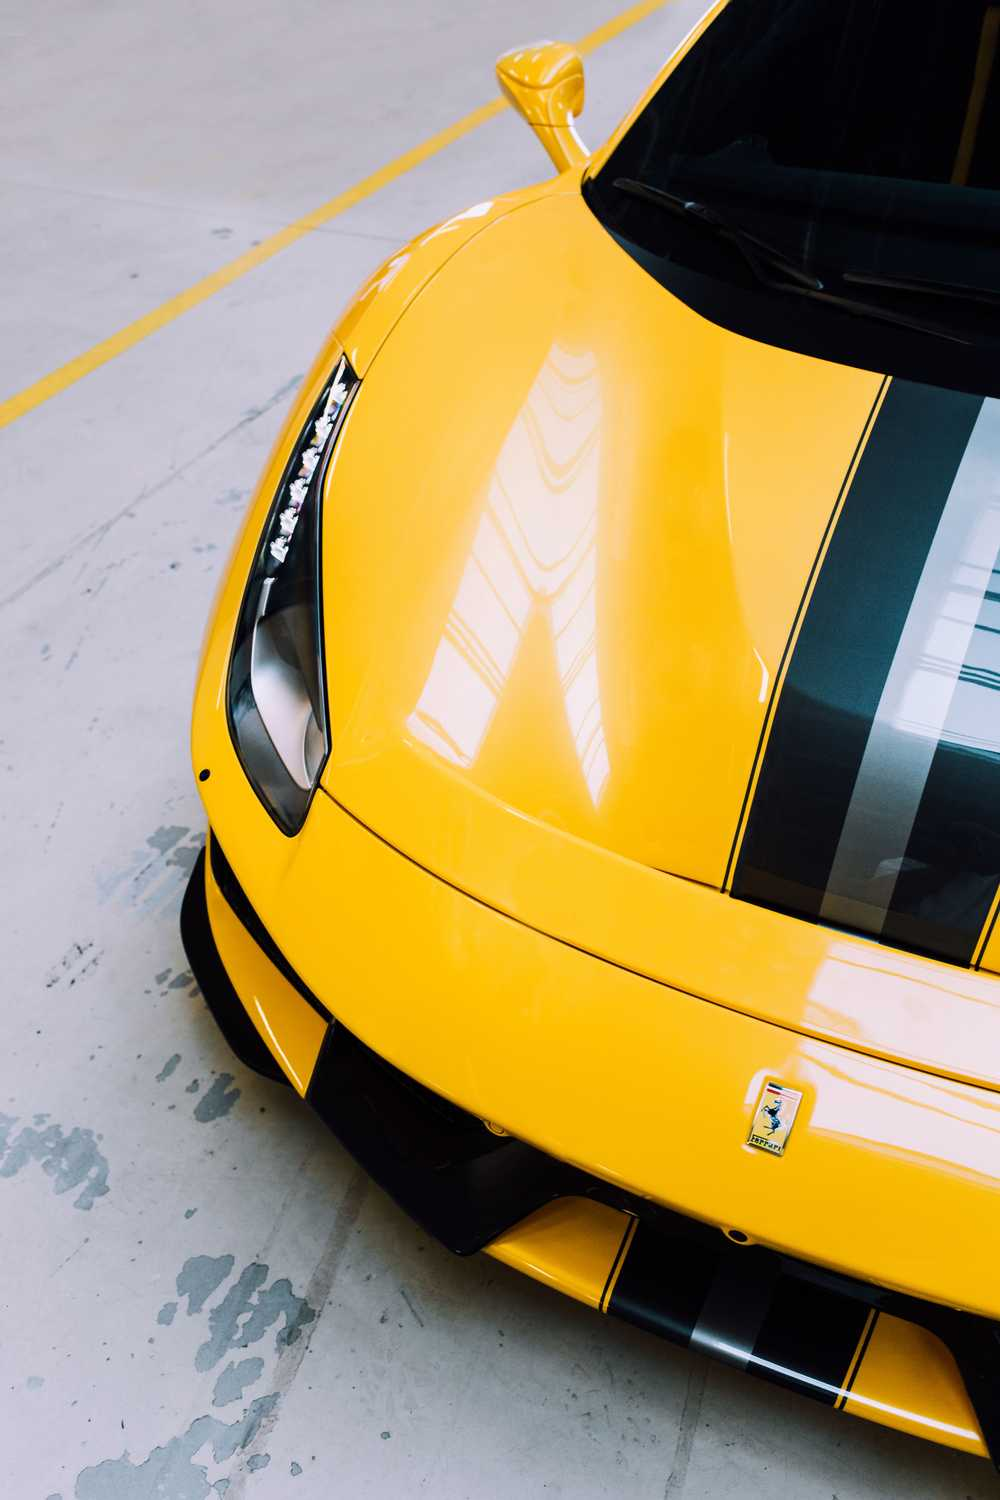 yellow and black car